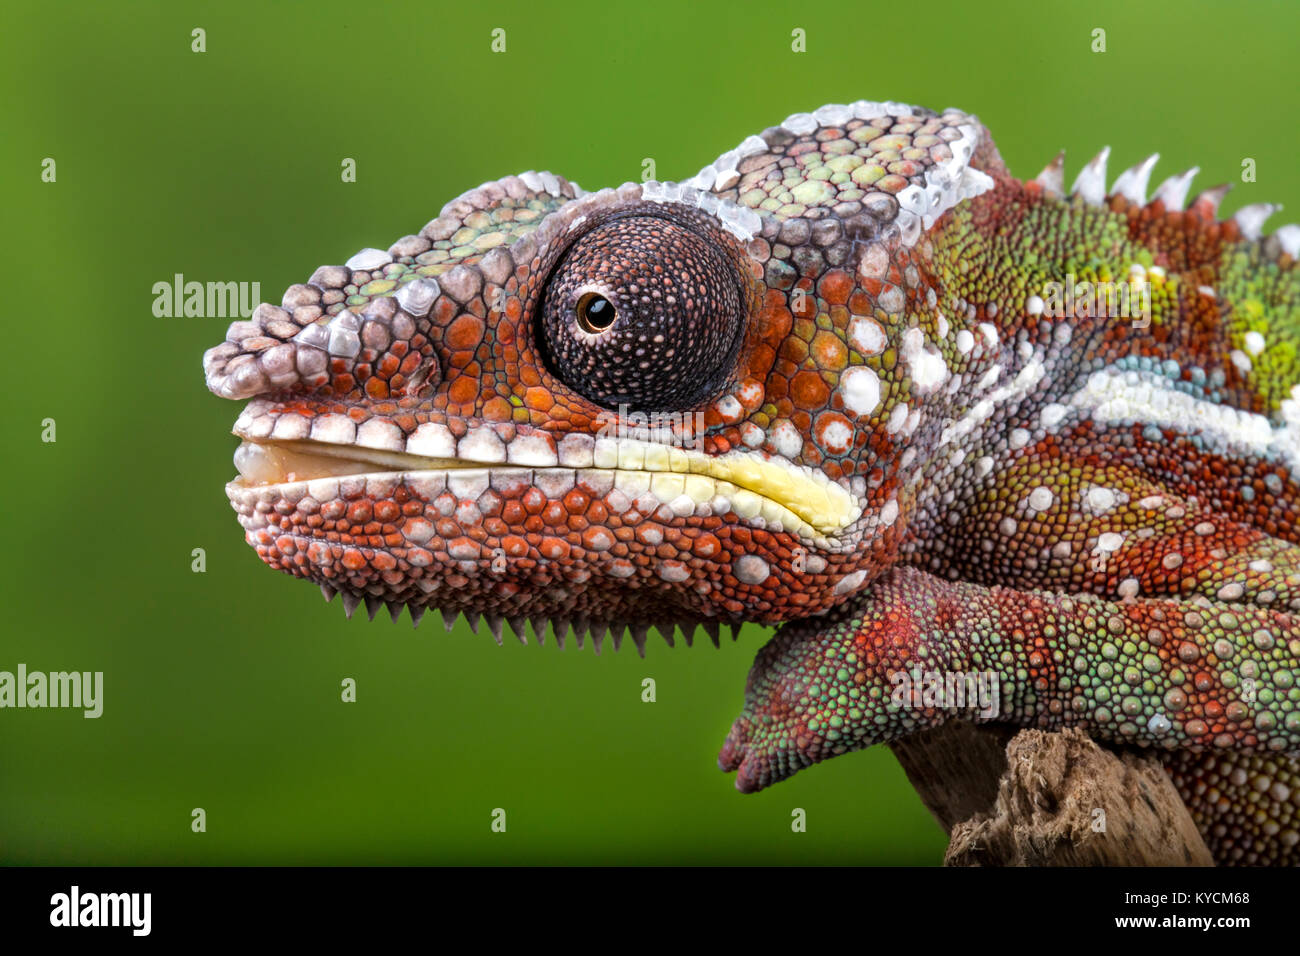 A colourful Panther Chameleon looking forward and about to strike with it's tounge. - Stock Image